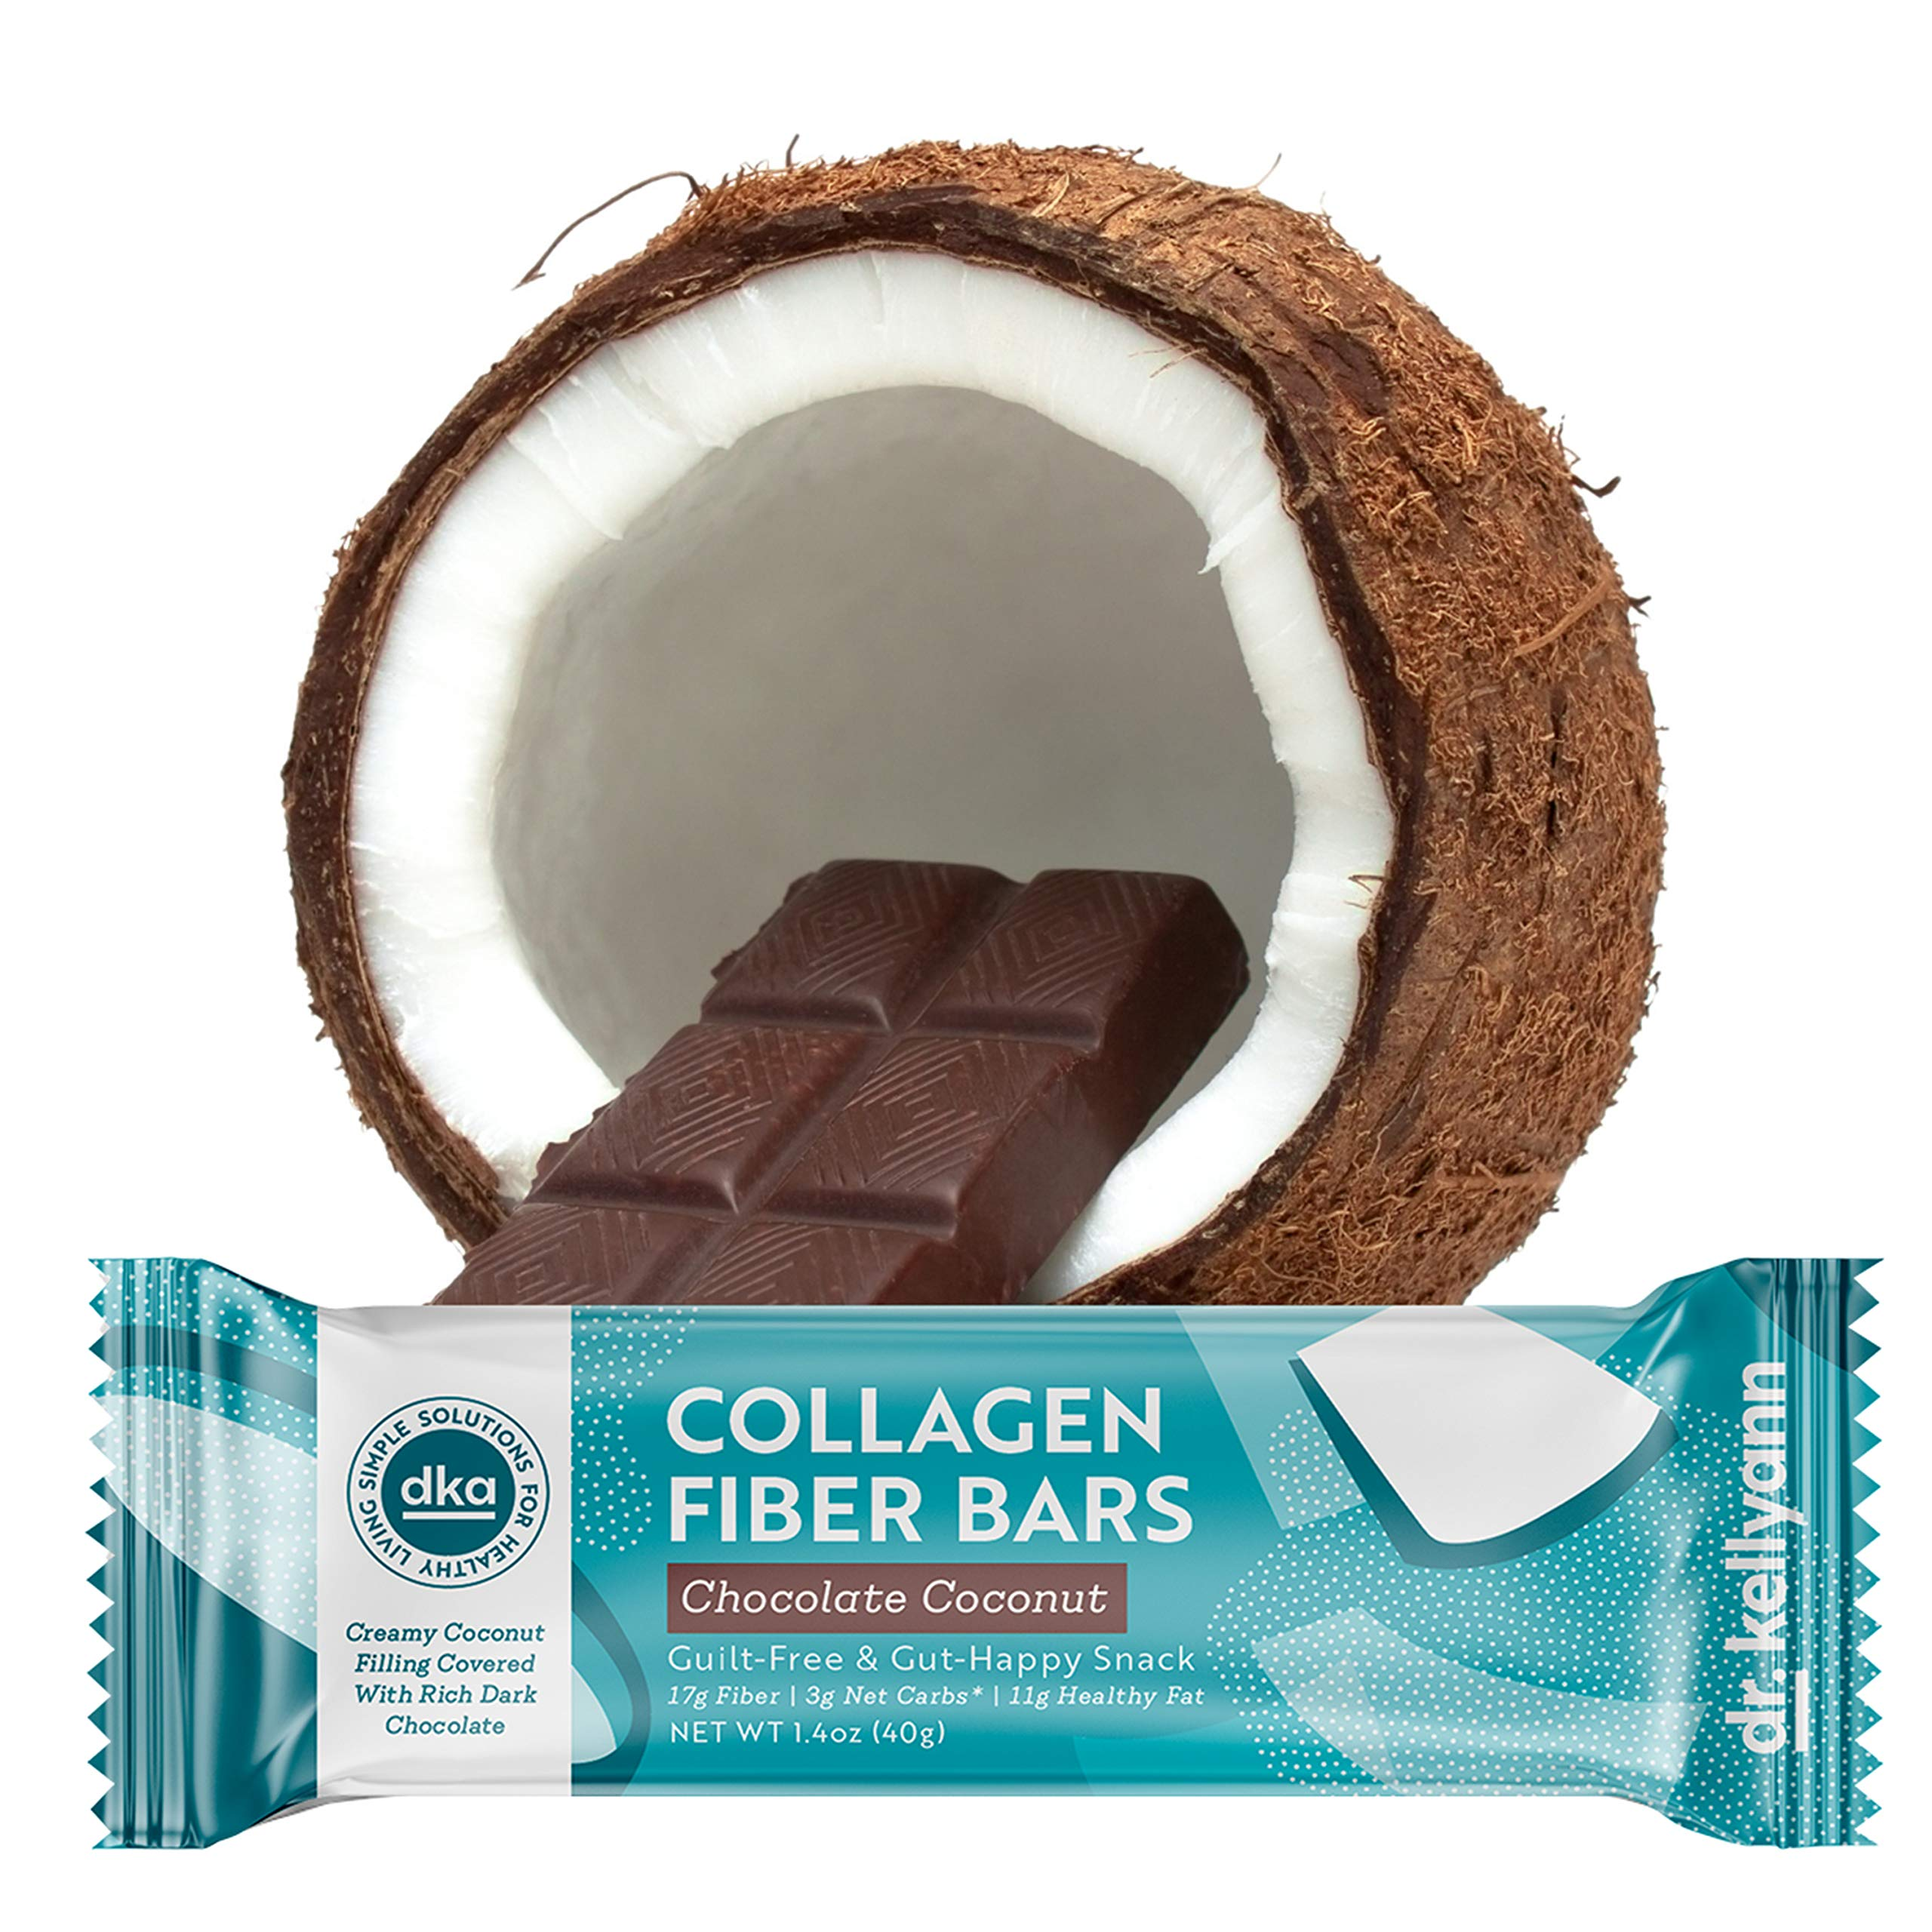 Keto Collagen Fiber Bar - High Fiber, Low Carbs - Dairy Free, Soy Free, Gluten Free, Non-GMO & No Added Sugar - Perfect Keto & Paleo Snack with Creamy Coconut Inside Dipped in Dark Chocolate (12 bars) by Dr. Kellyann (Image #1)